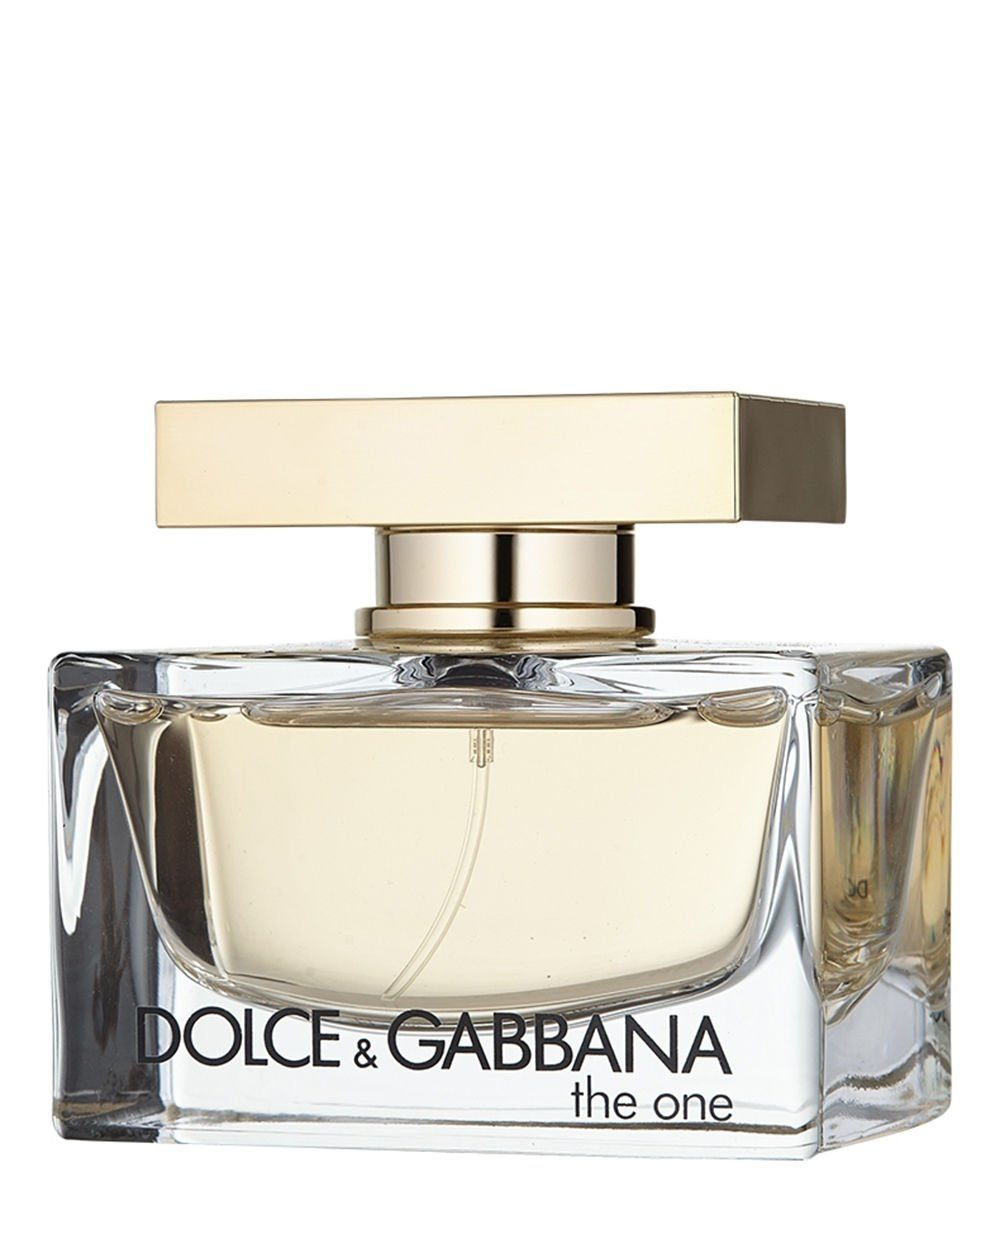 DOLCE&GABBANA Eau de Parfum »The one«